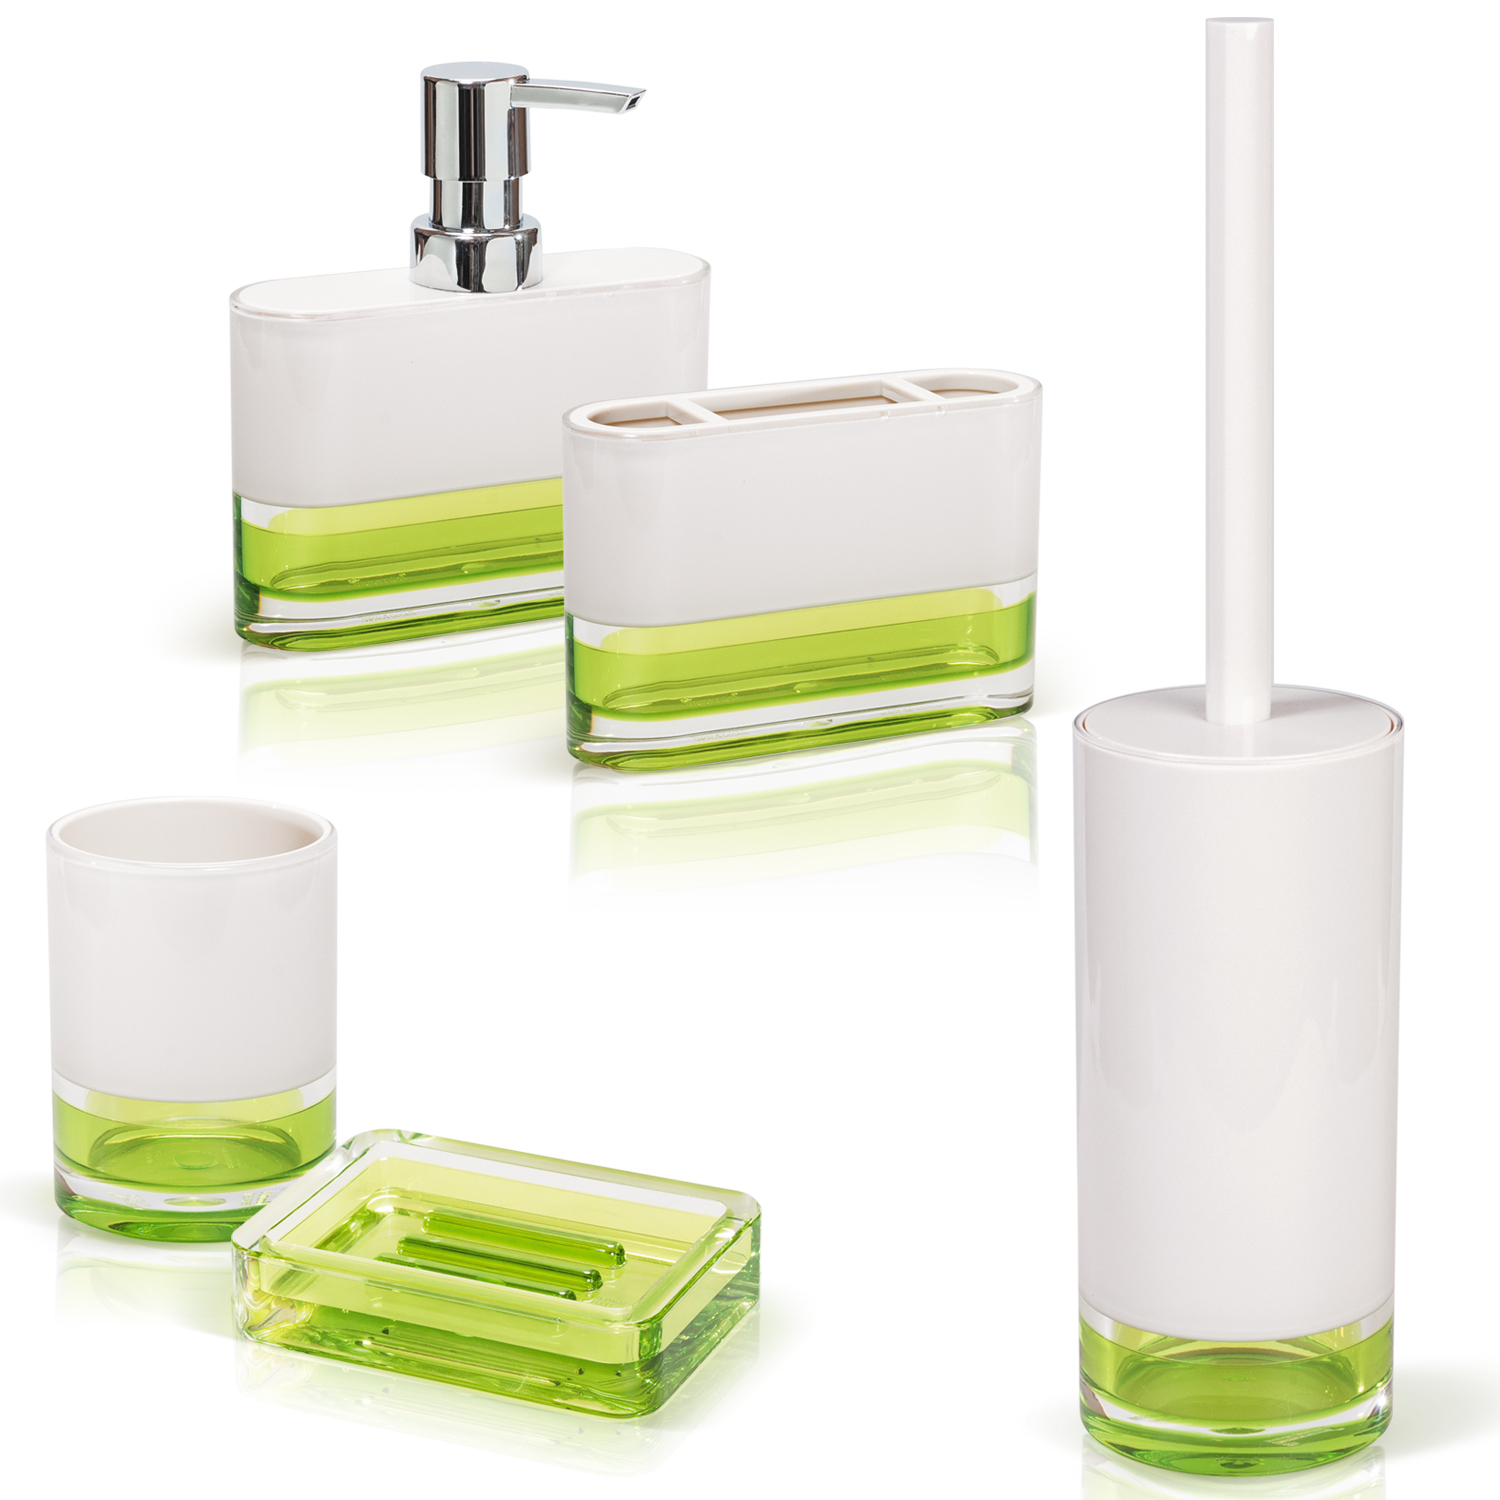 Tatkraft Topaz Green Bathroom Accessories Set Of 5 Soap Dish Bath Tumbler Dispenser Toothbrush Holder Toilet Brush